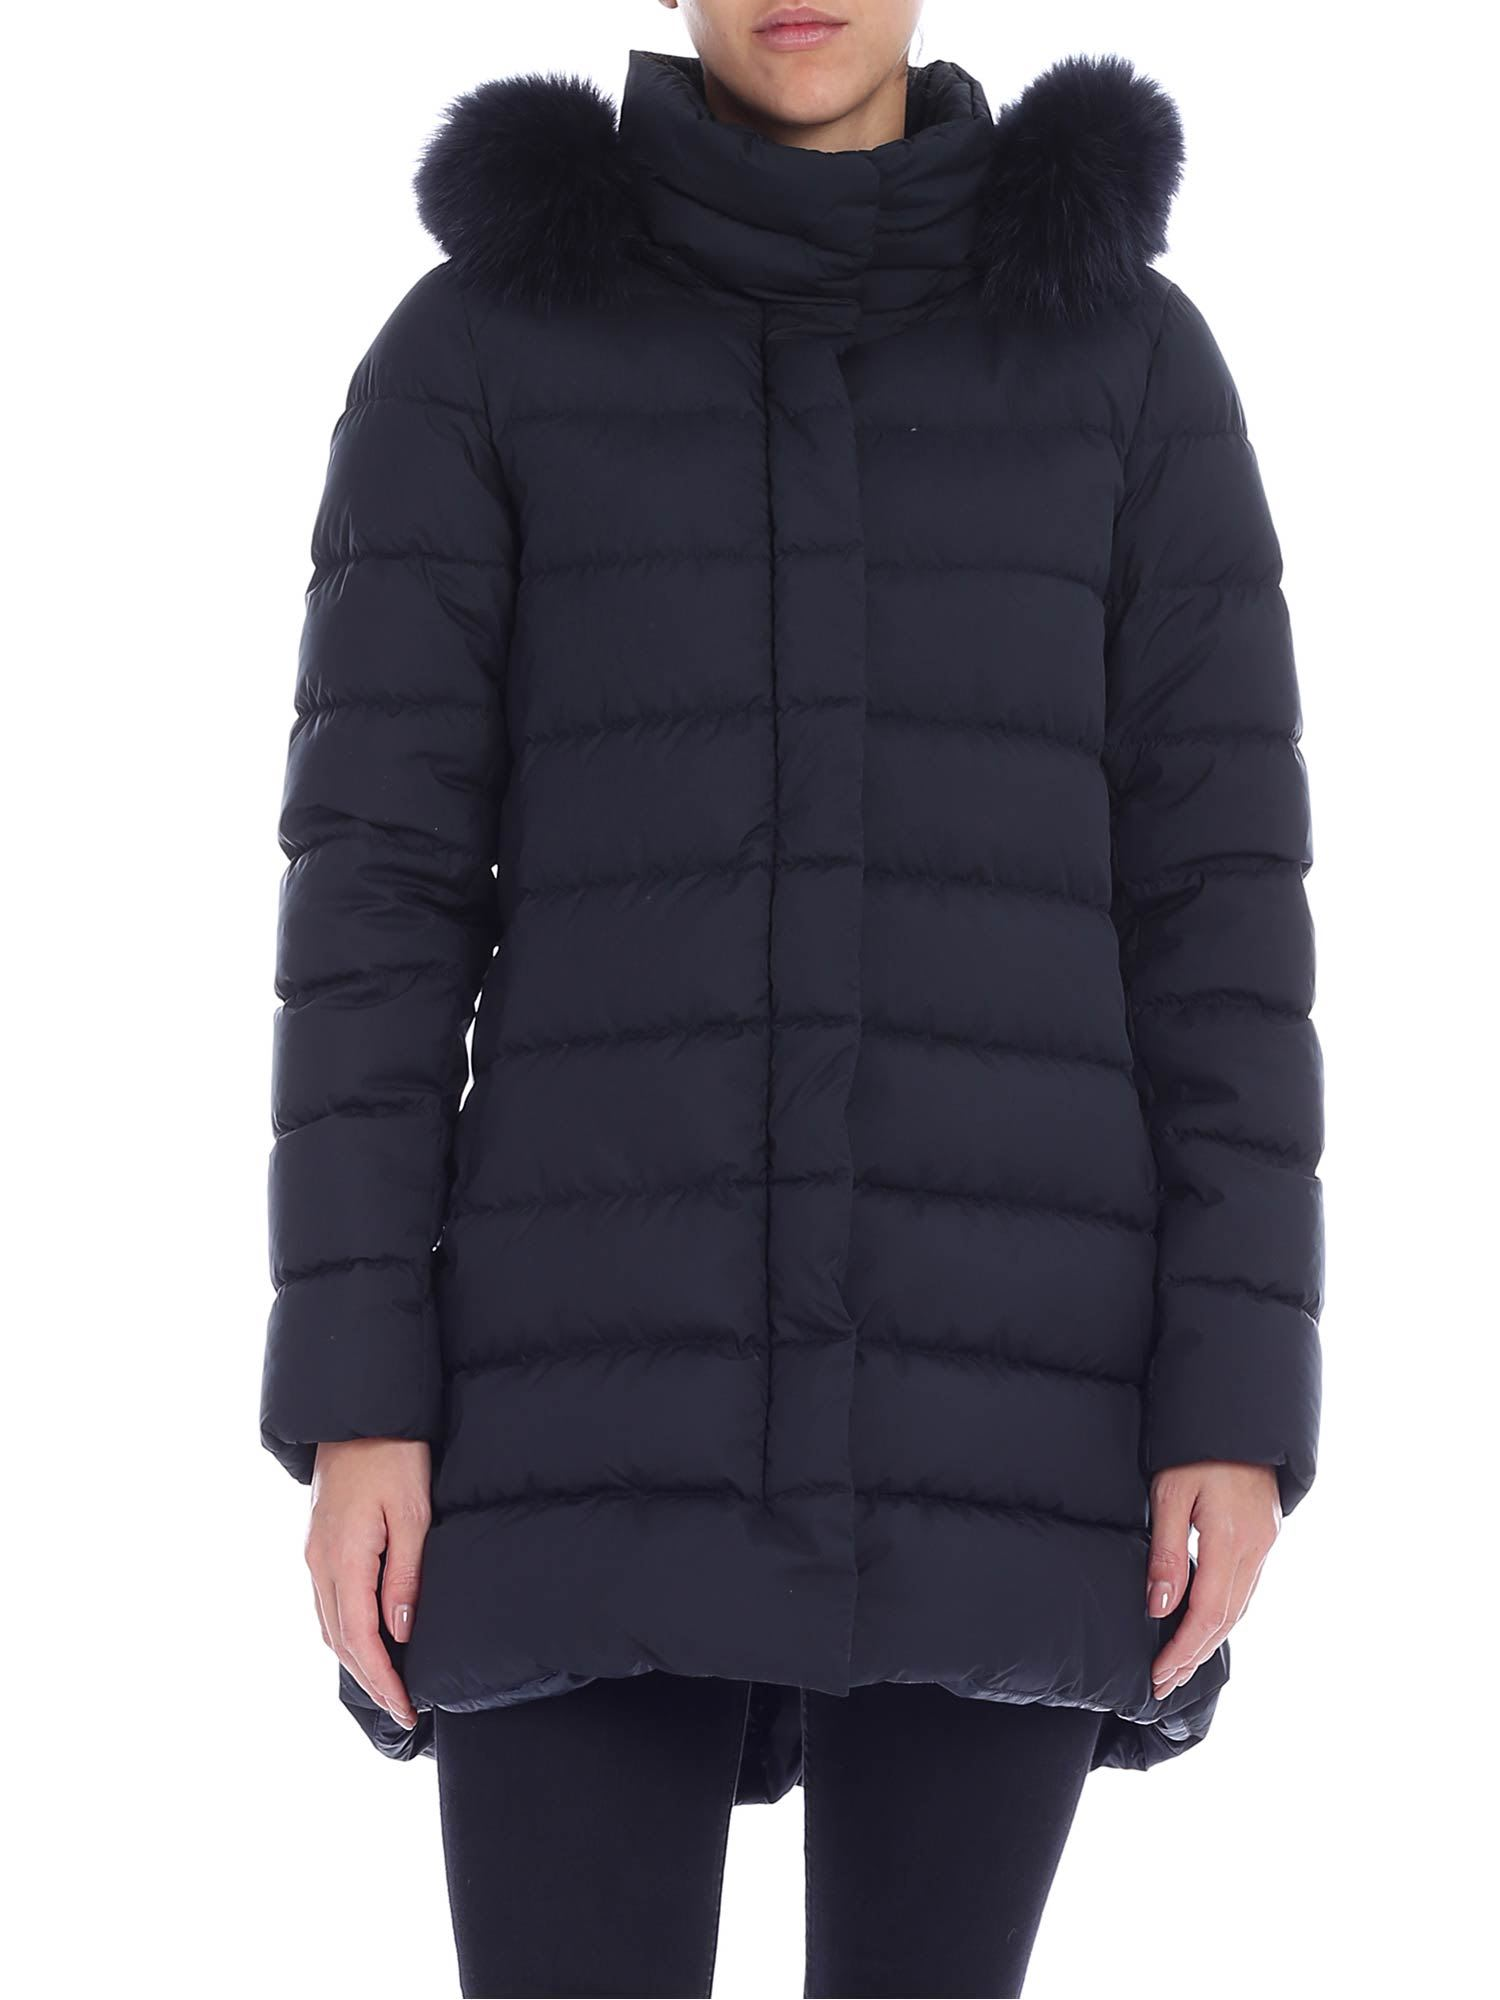 Herno Hooded Down Jacket With Fur Insert